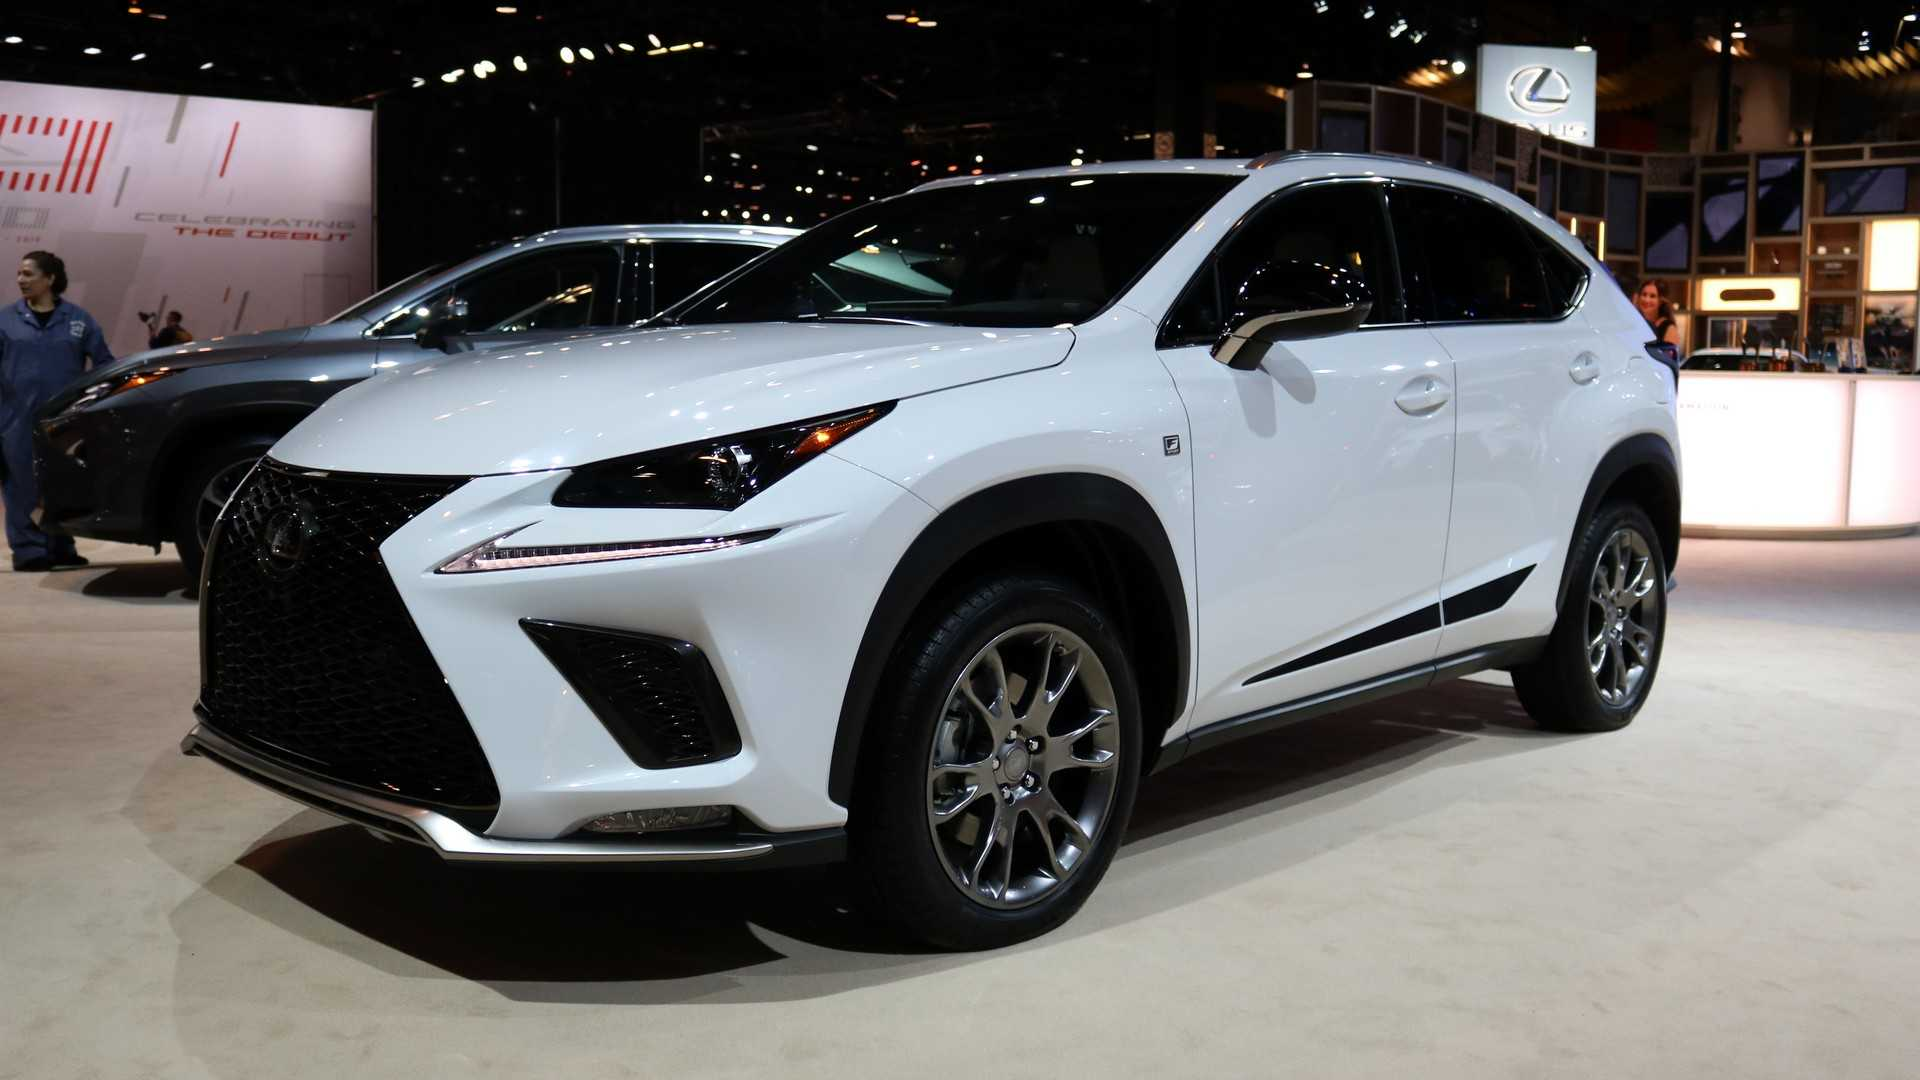 51 The Best 2019 Lexus Nx Engine